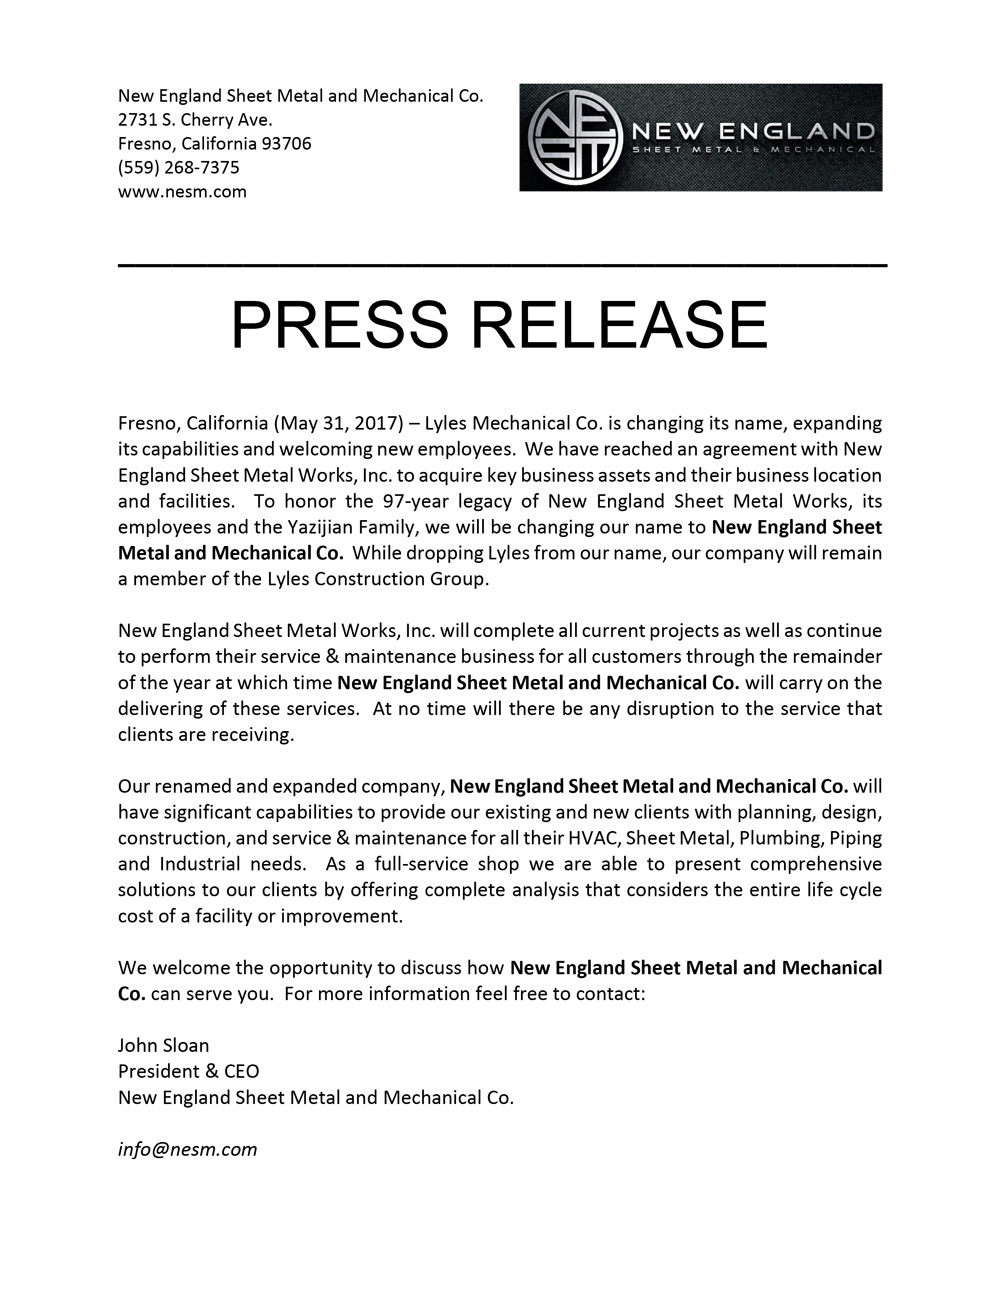 LMC-and-New-England-Press-Release-5.31.17_FF